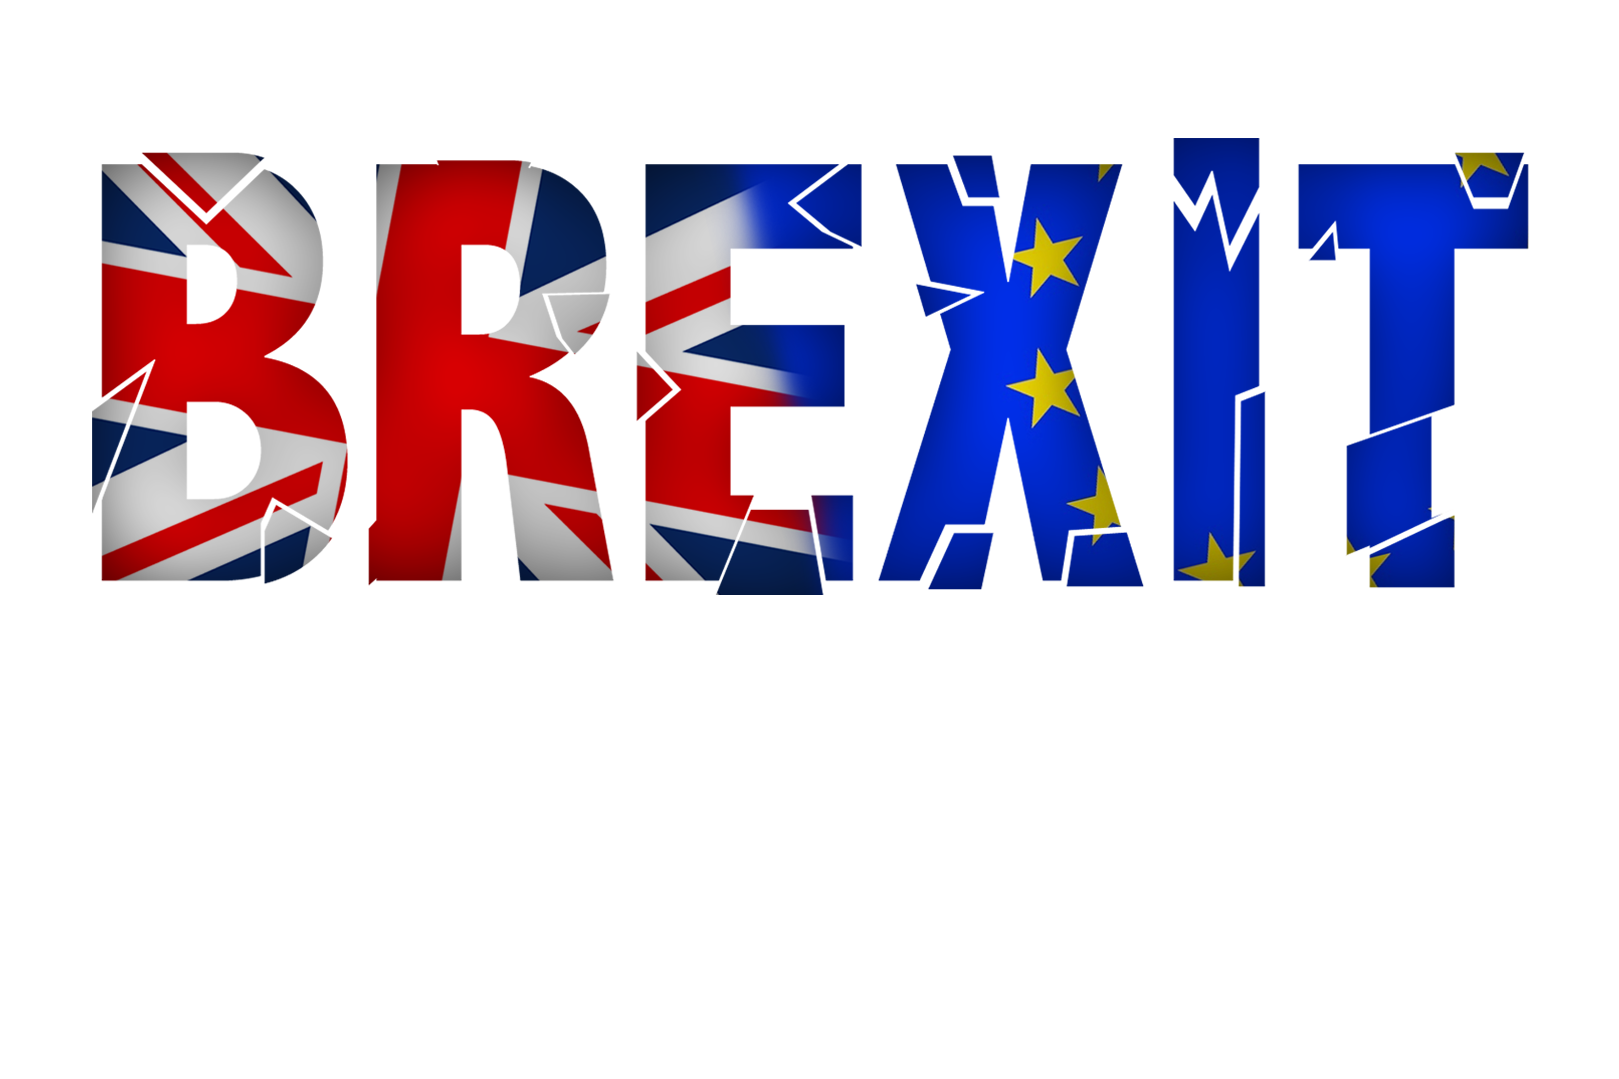 Will the UK and EU reach an agreement on the terms of the UK's exit?